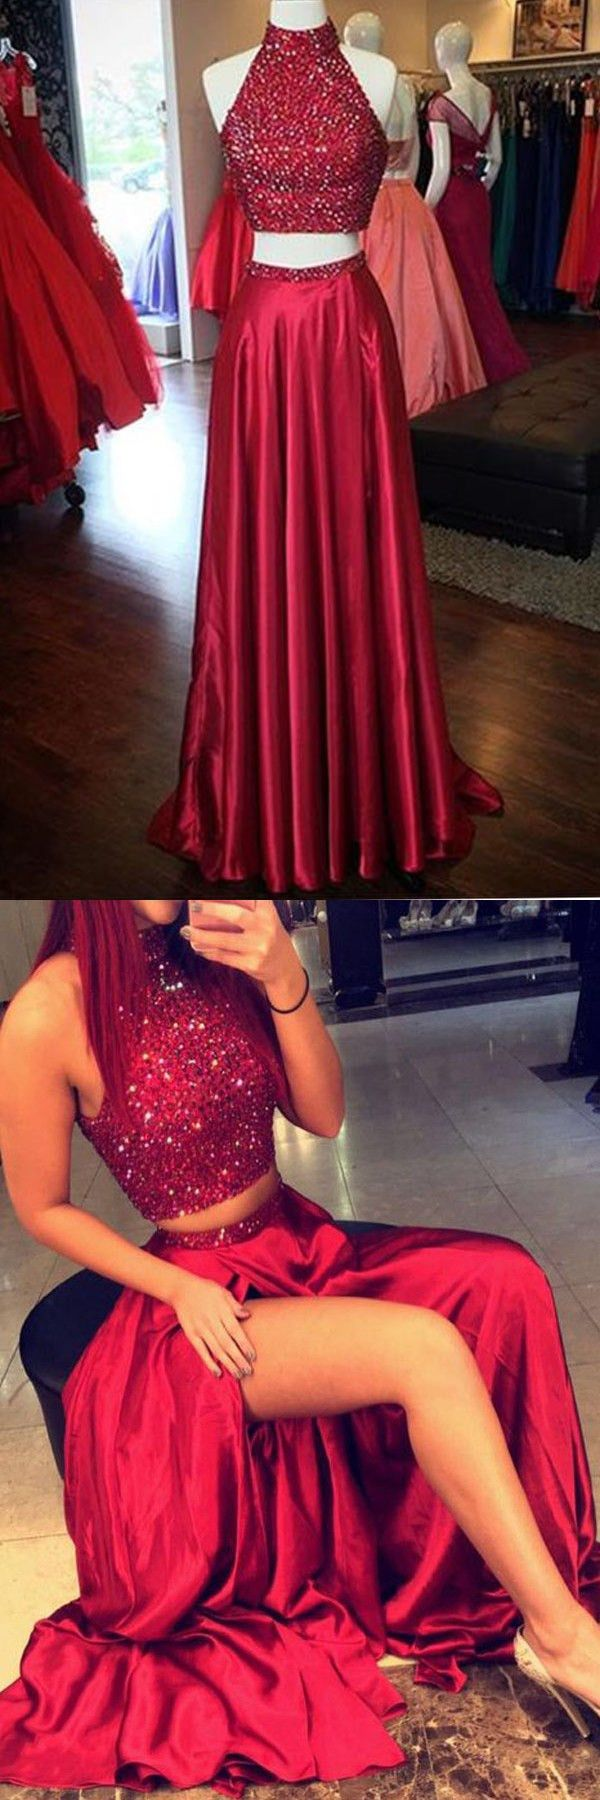 Maroon prom dresses,split prom dresses,two-piece prom dresses,fancy party dresses,cheap sparkling evening dresses